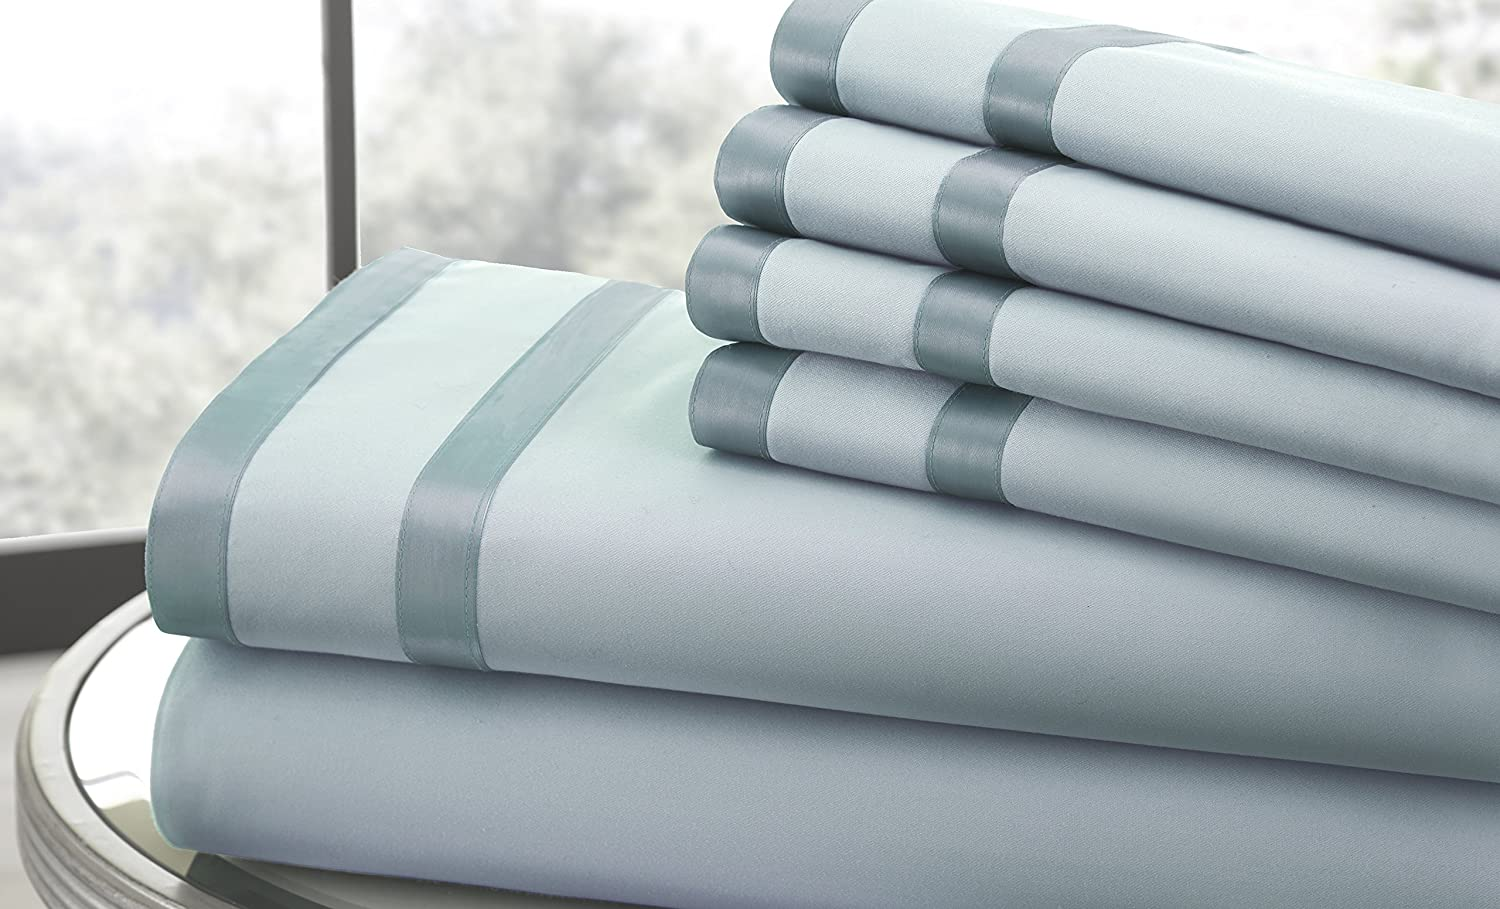 Queen, Sterling Blue//Celestial Blue Amrapur Overseas Ultra-Soft 1000 Thread Count 6-Piece Cotton Rich Bed Sheet Set with Double Satin Band